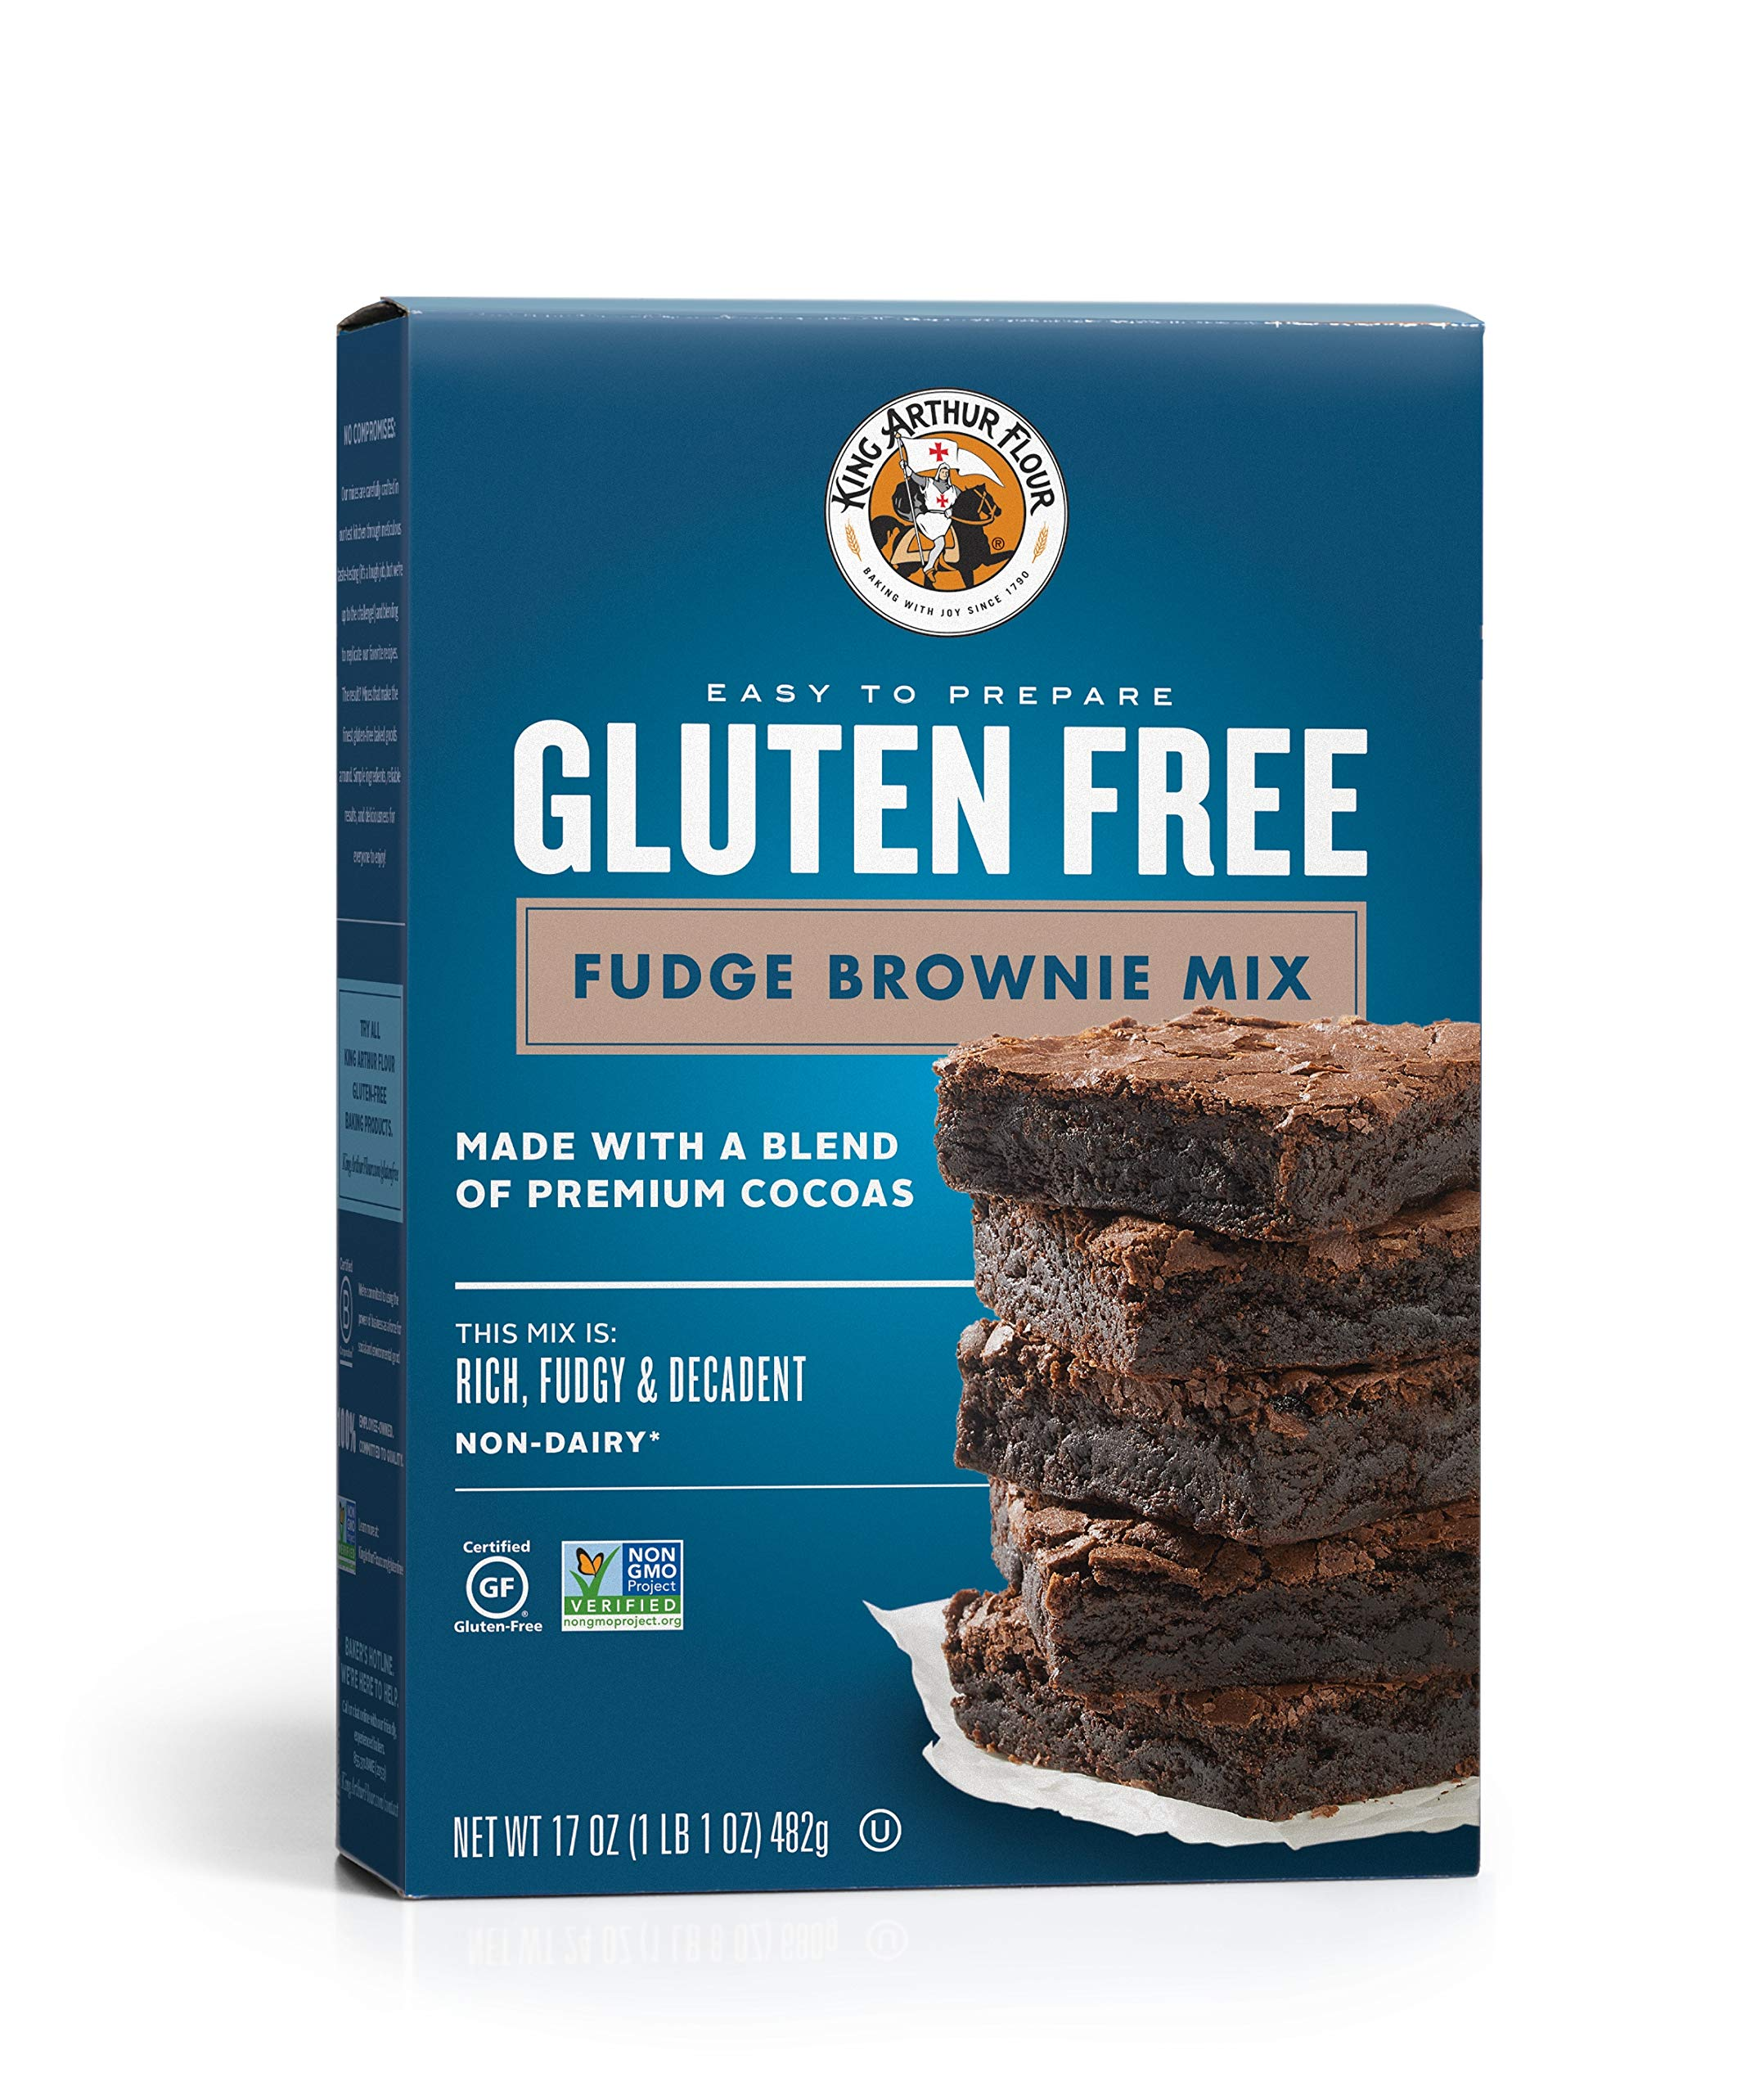 KING ARTHUR FLOUR, Fudge Brownie Mix, Gluten Free, 17 Ounce (Pack of 6) by King Arthur Flour